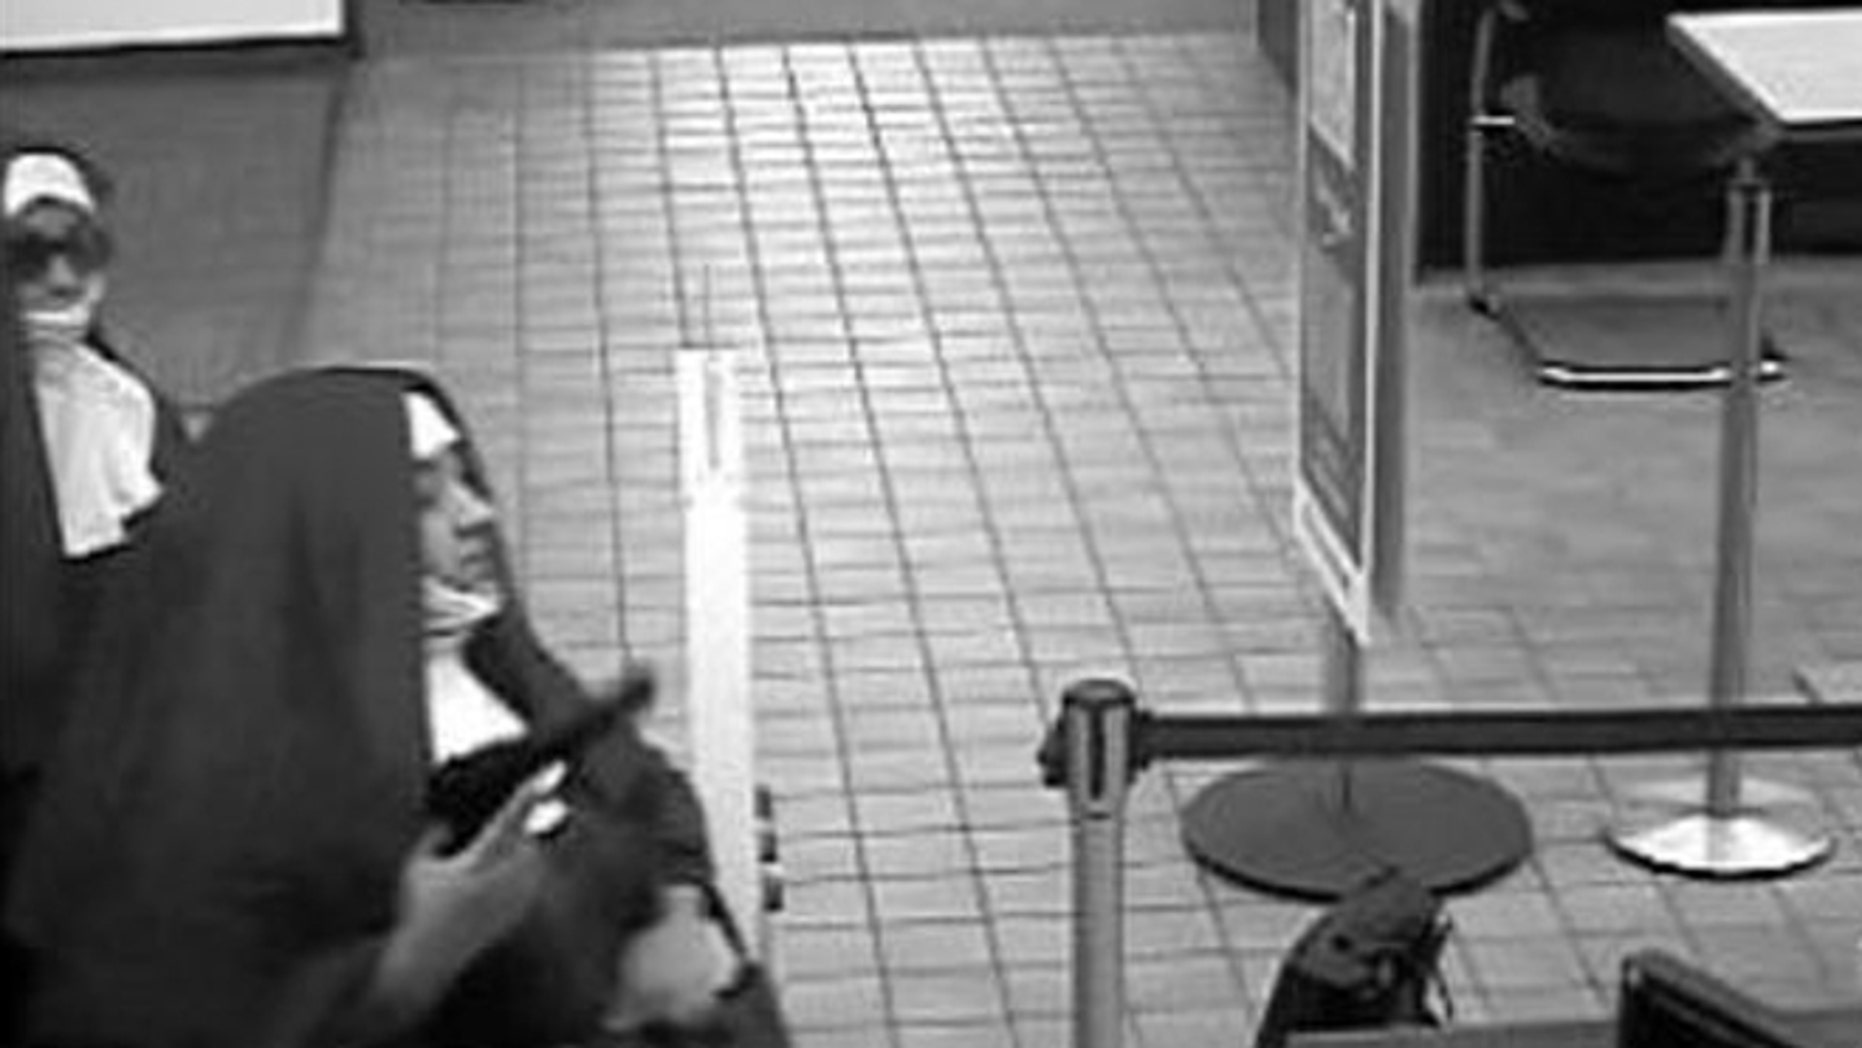 Two woman disguised themselves as nuns while attempting to rob a Pennsylvania bank.